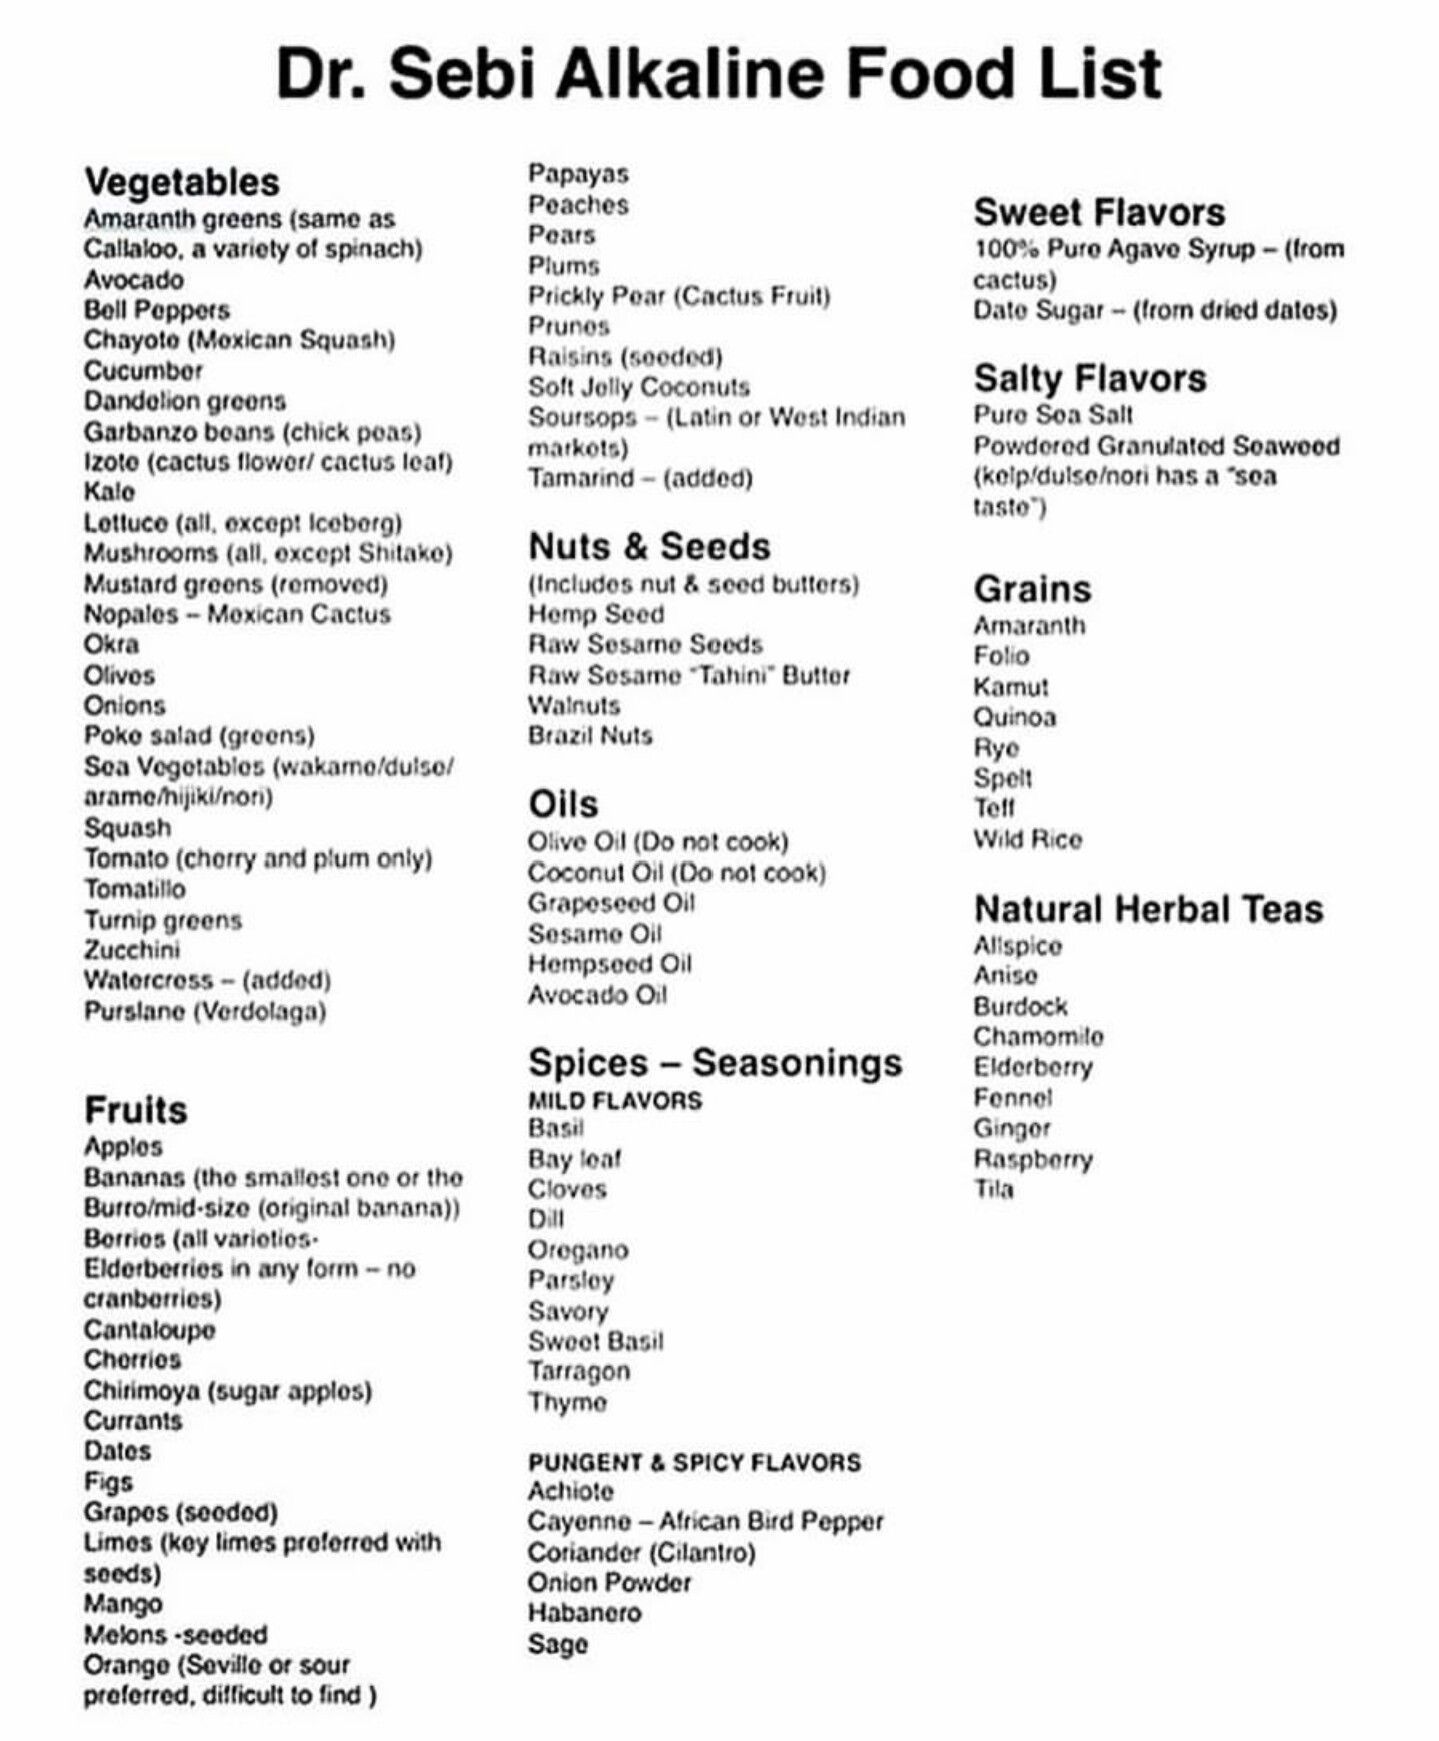 dr sebi alkaline diet foods list